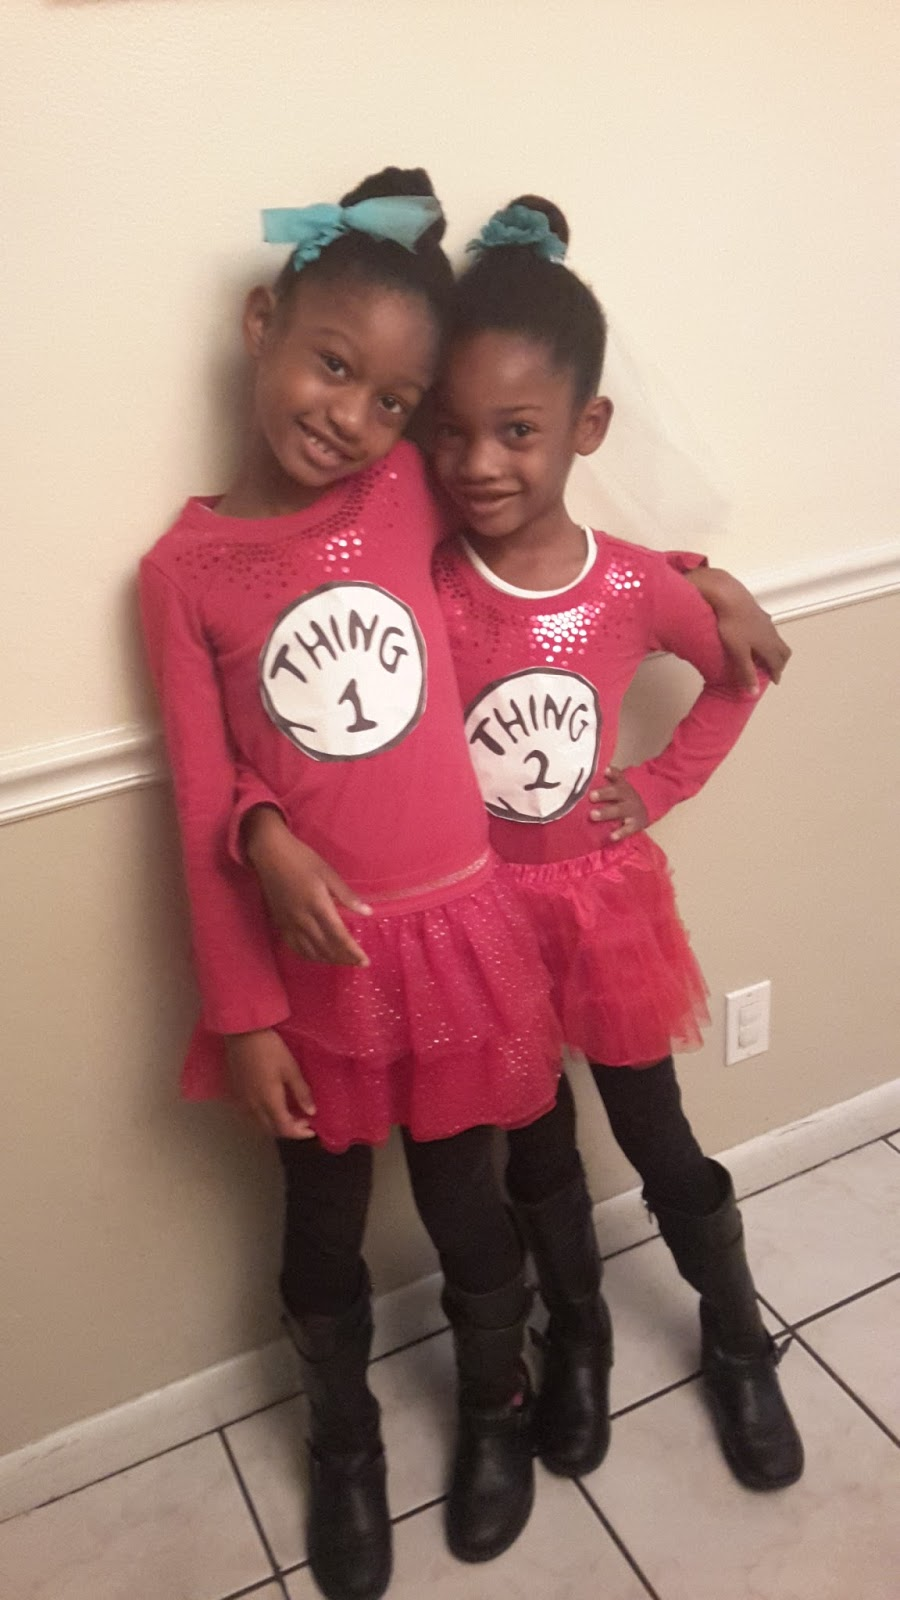 Anointedheels Easy Diy Thing 1 And Thing 2 Costume For Dr Seuss Week